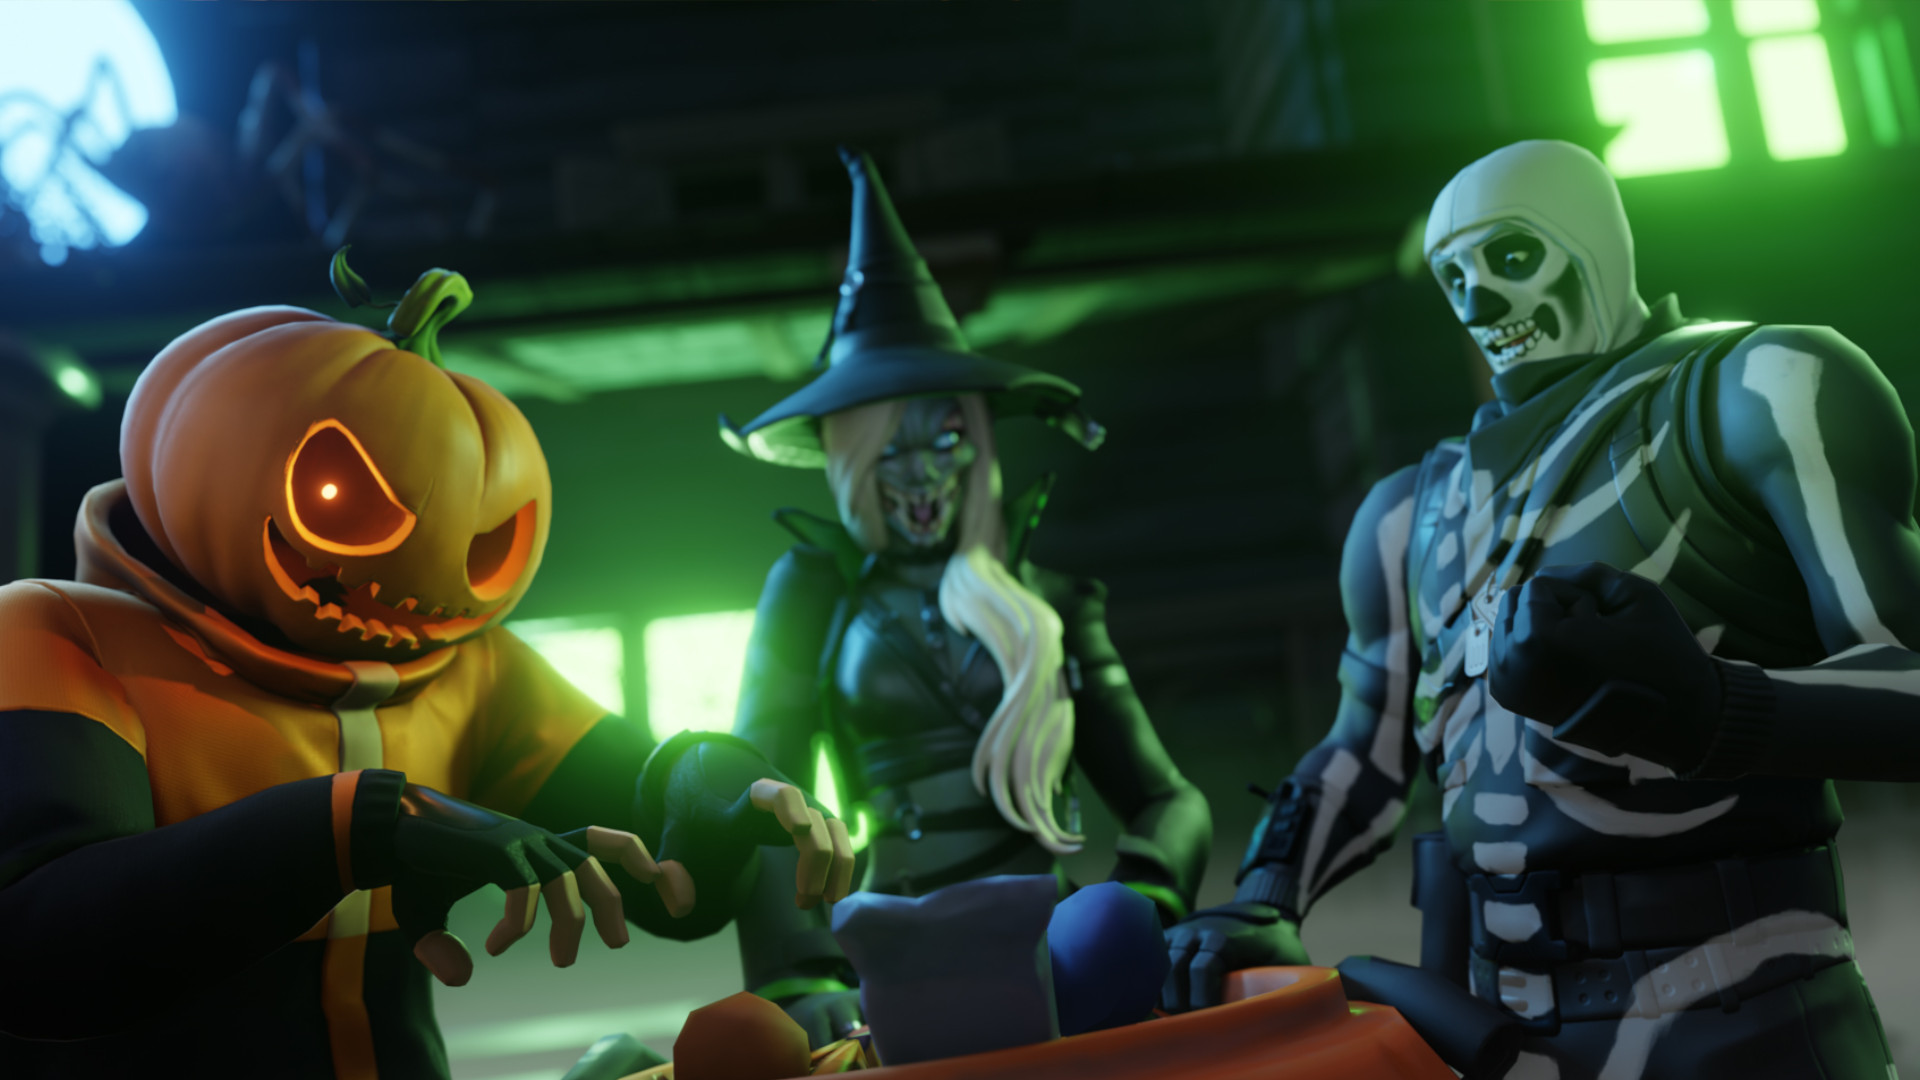 Epic's reportedly thinking about a Fortnite movie as part of an entertainment division